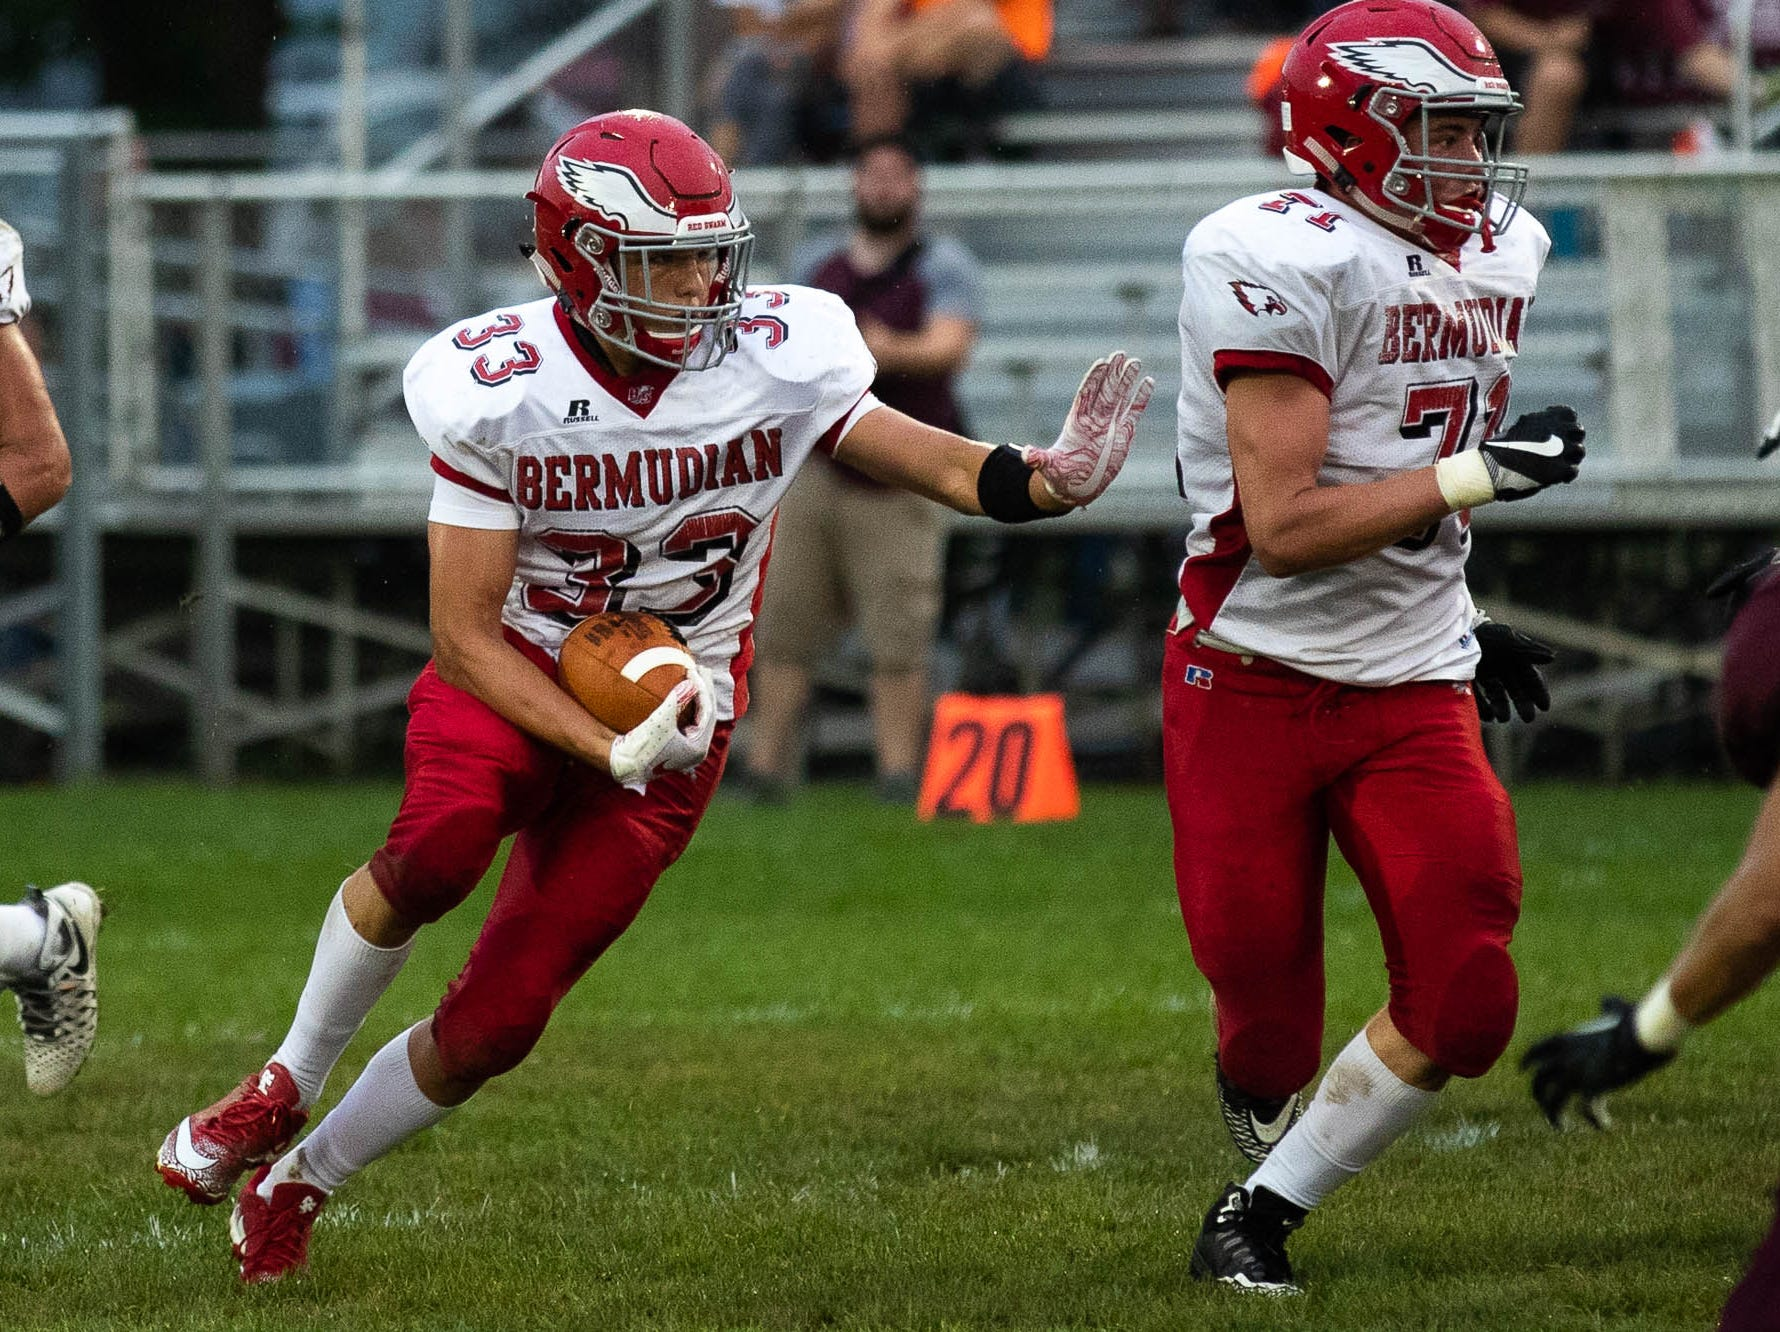 Bermudian Springs' Trace Grim (33) runs the ball during a football game between Shippensburg and Bermudian Springs, Friday, Sept. 7, 2018, at Shippensburg High School.